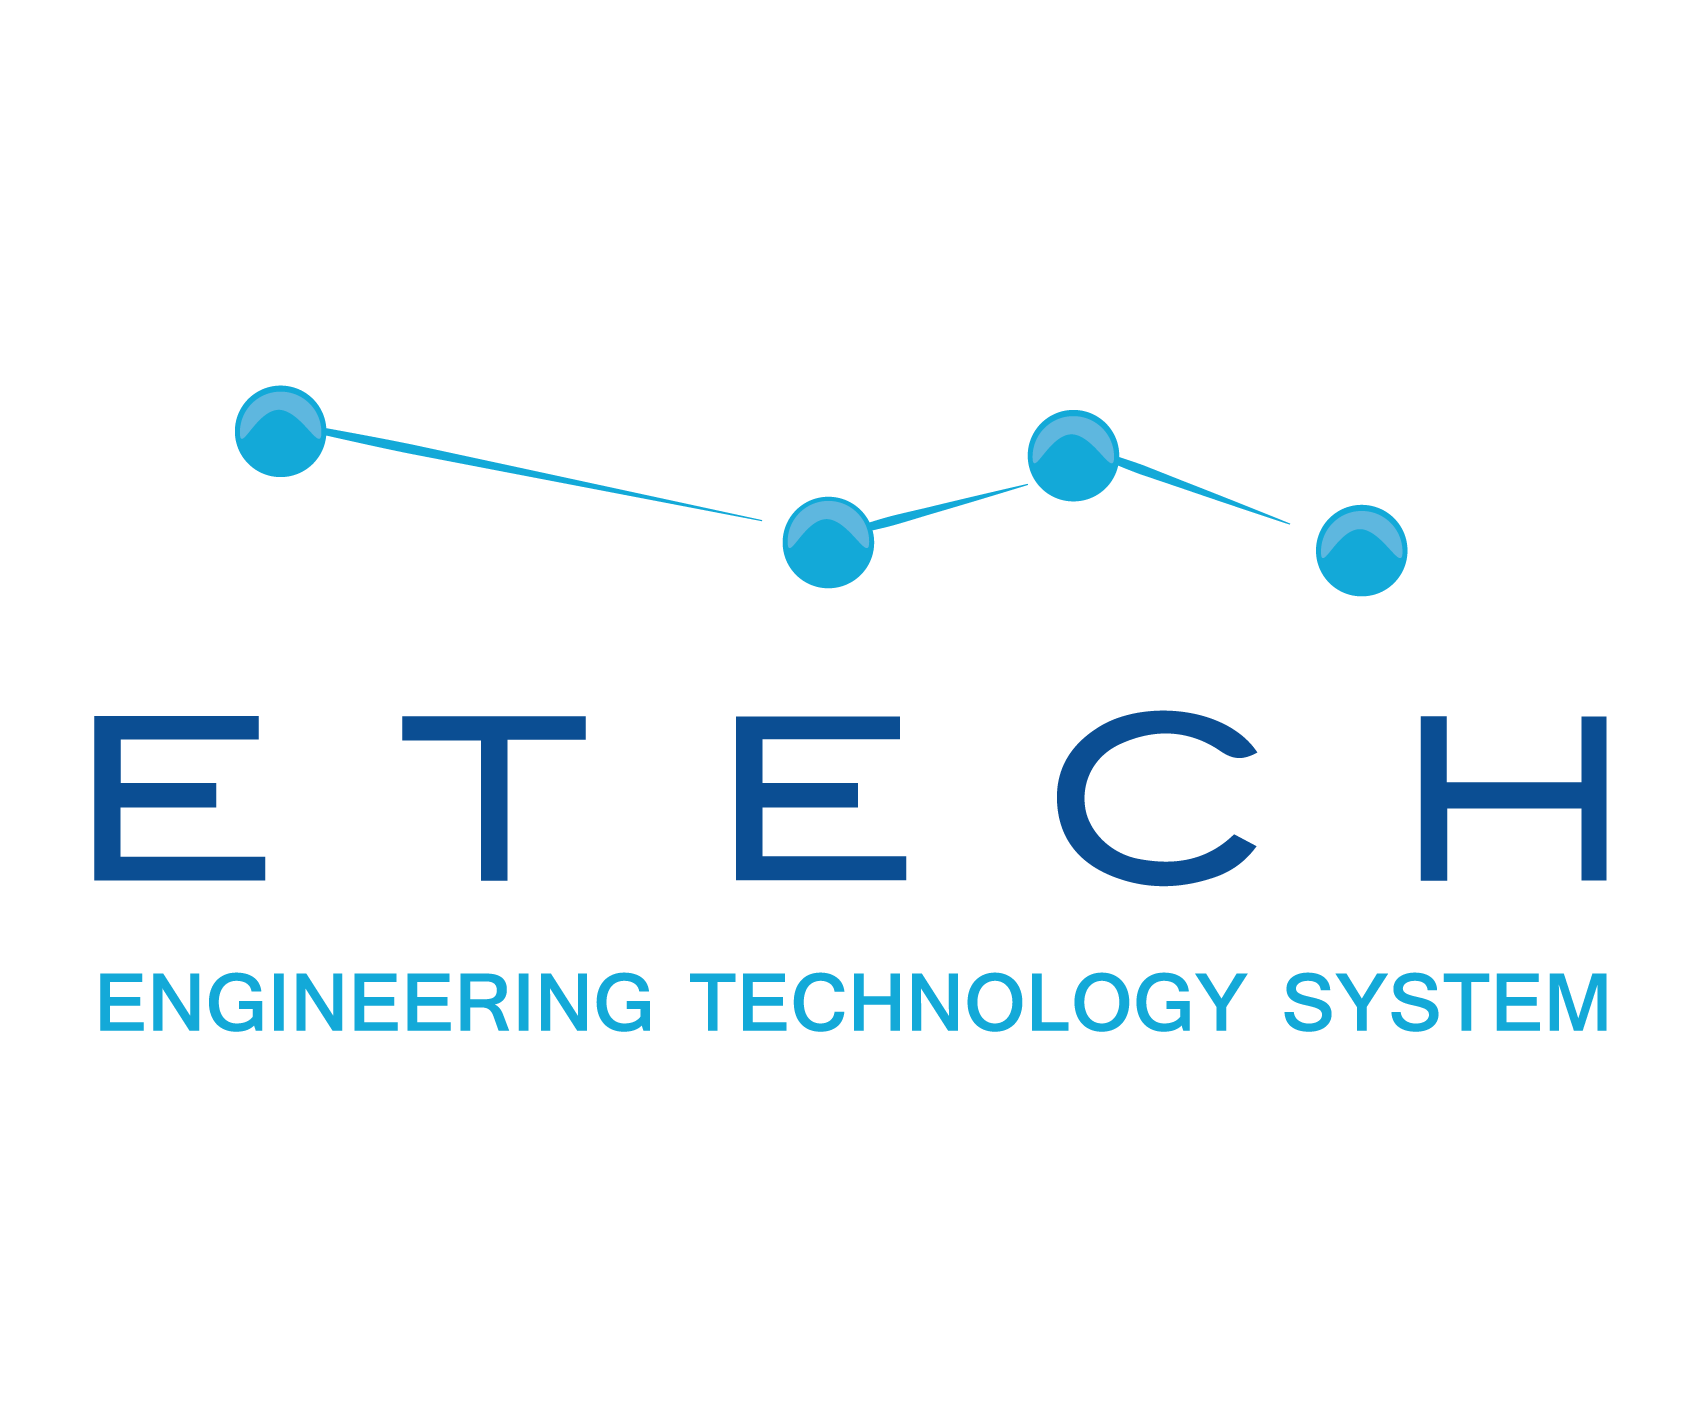 Engineering Technology System